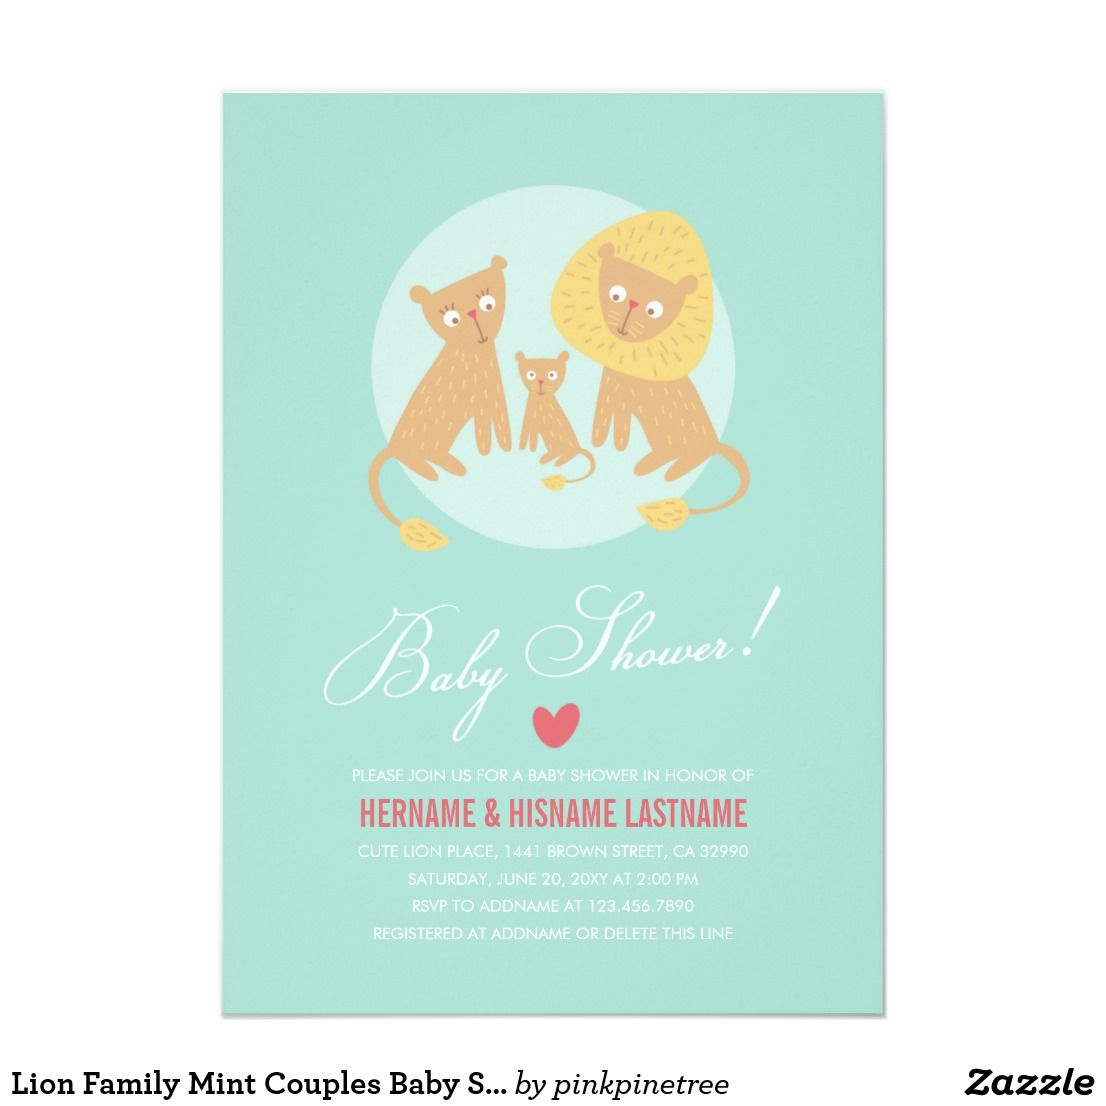 Lion Family Mint Couples Baby Shower Invite Round | Lion family and ...